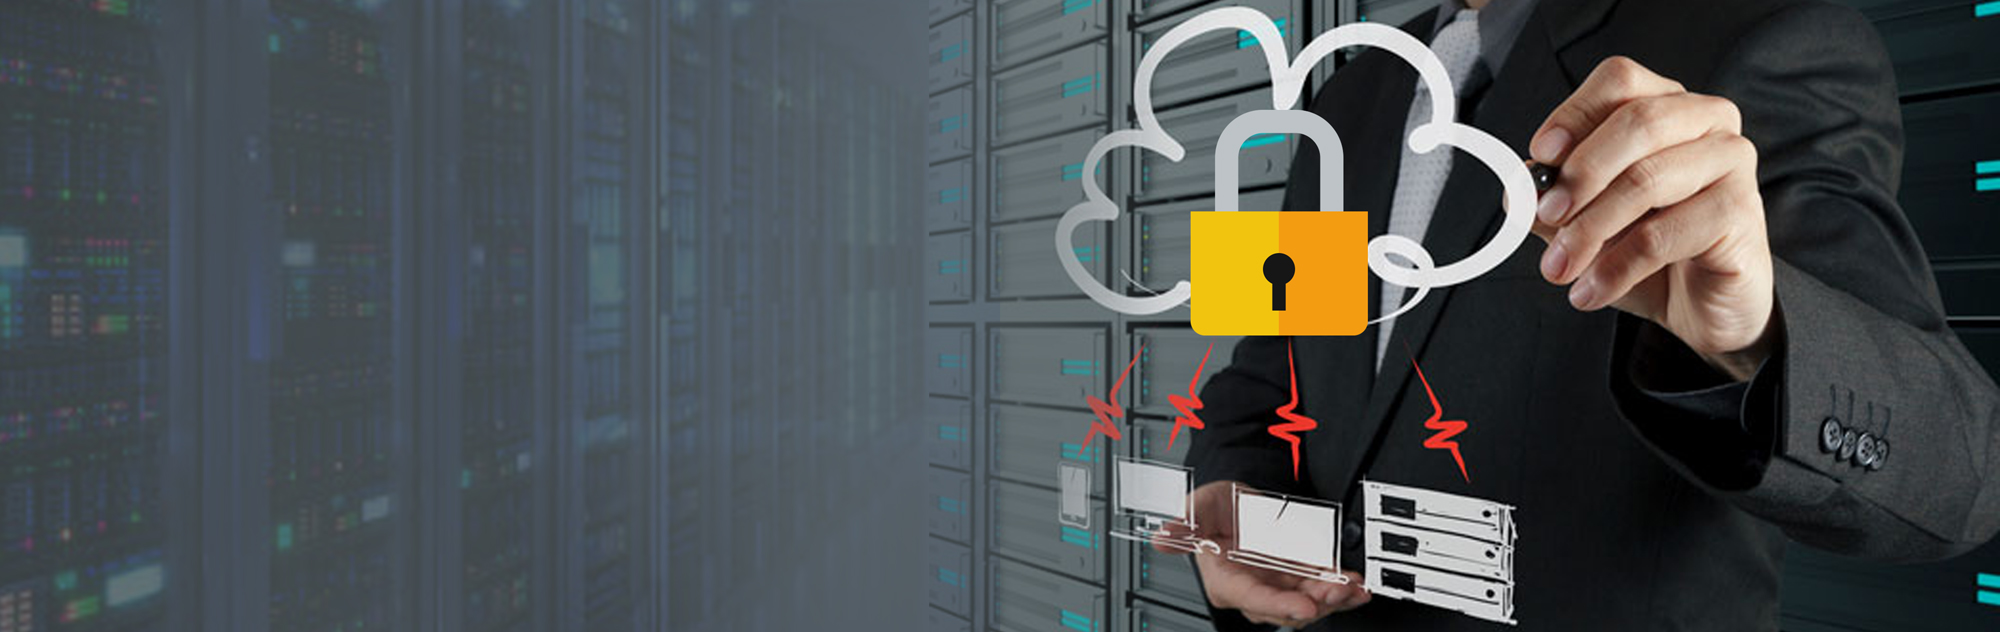 Two Factor Authentication – It Secures Your Online Data, It's Proven